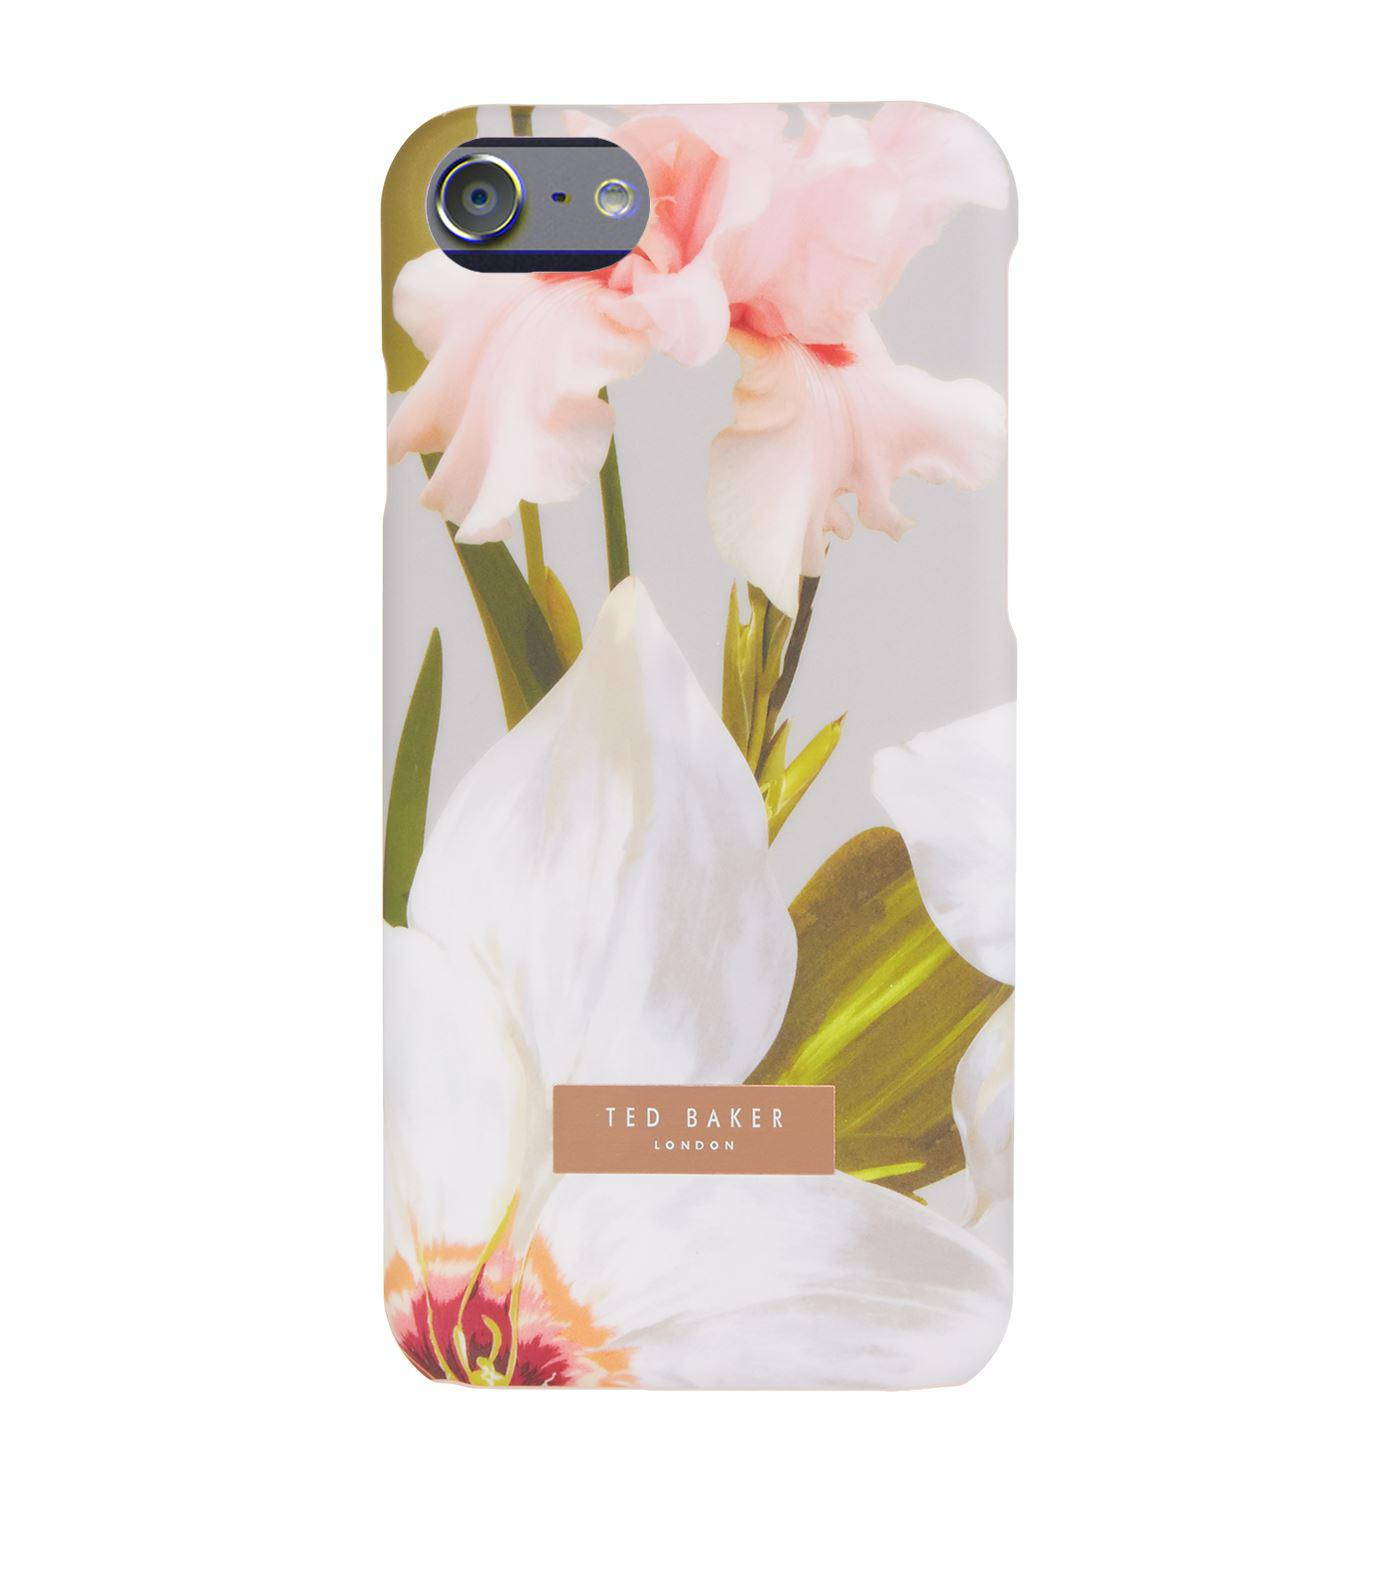 Ted Baker Chatsworth Bloom Iphone 6/6s/7/8 Plus Case GeyGc